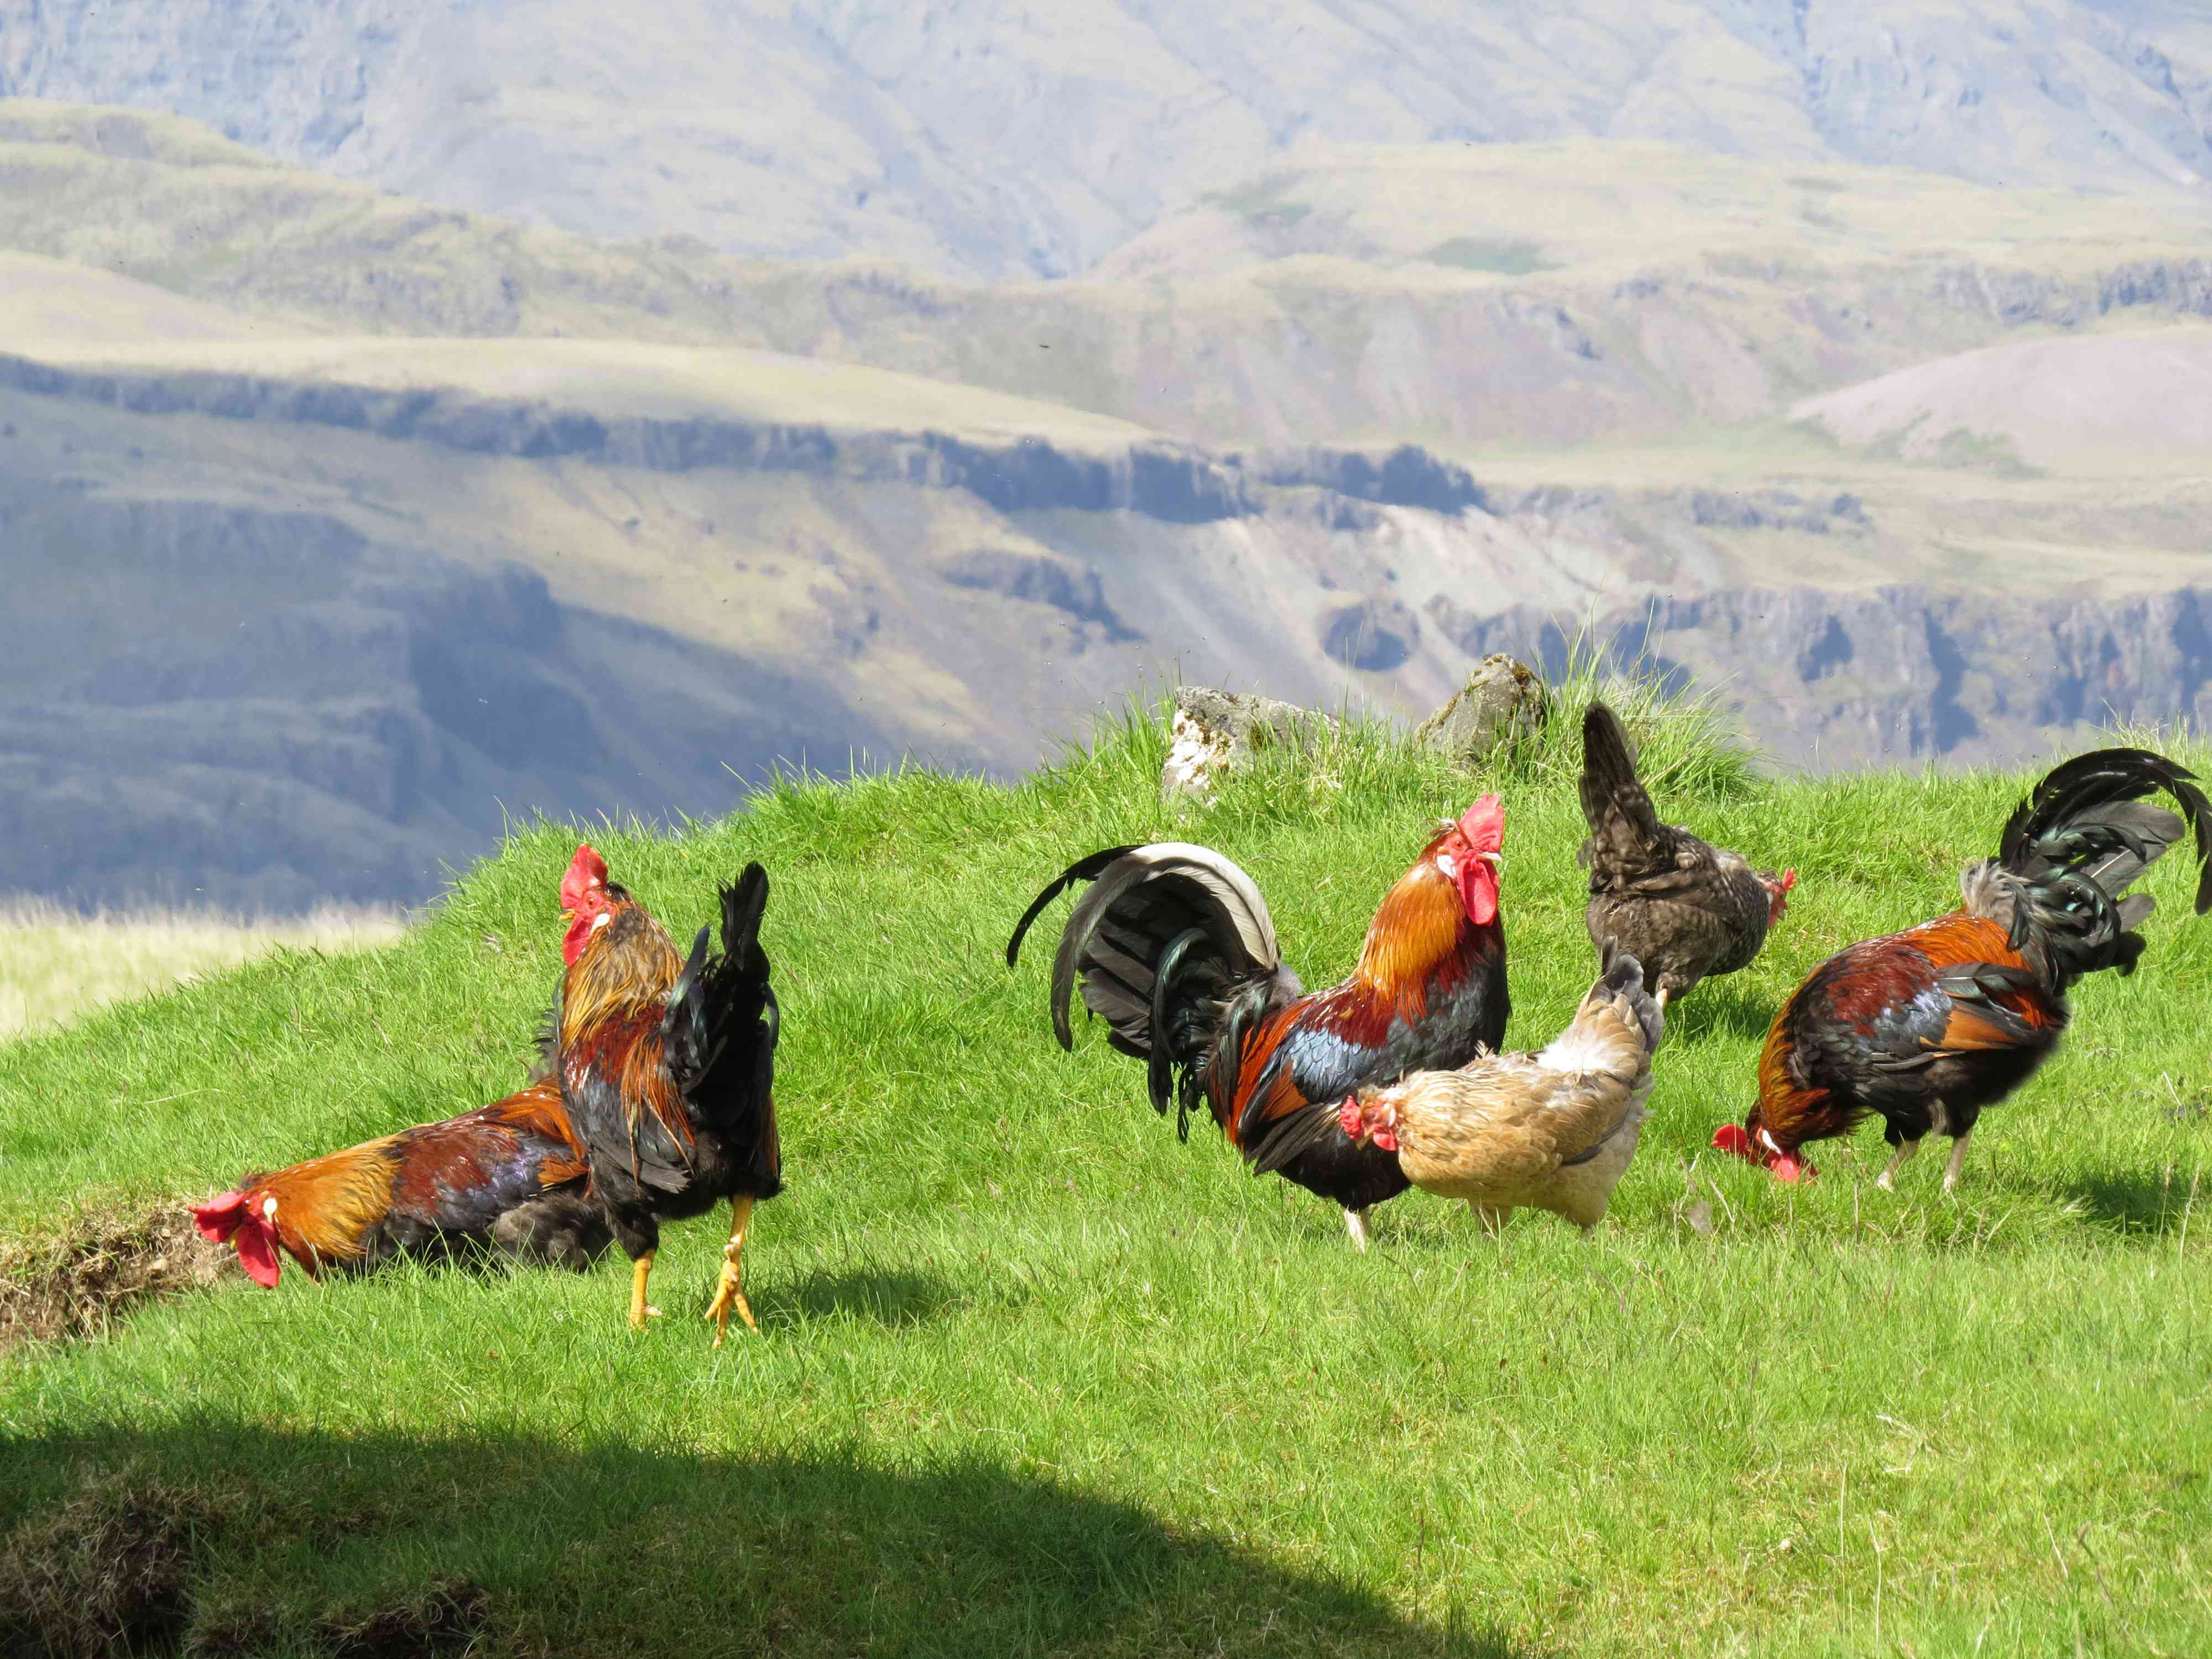 Roosters and chickens in the green grass of the mountains